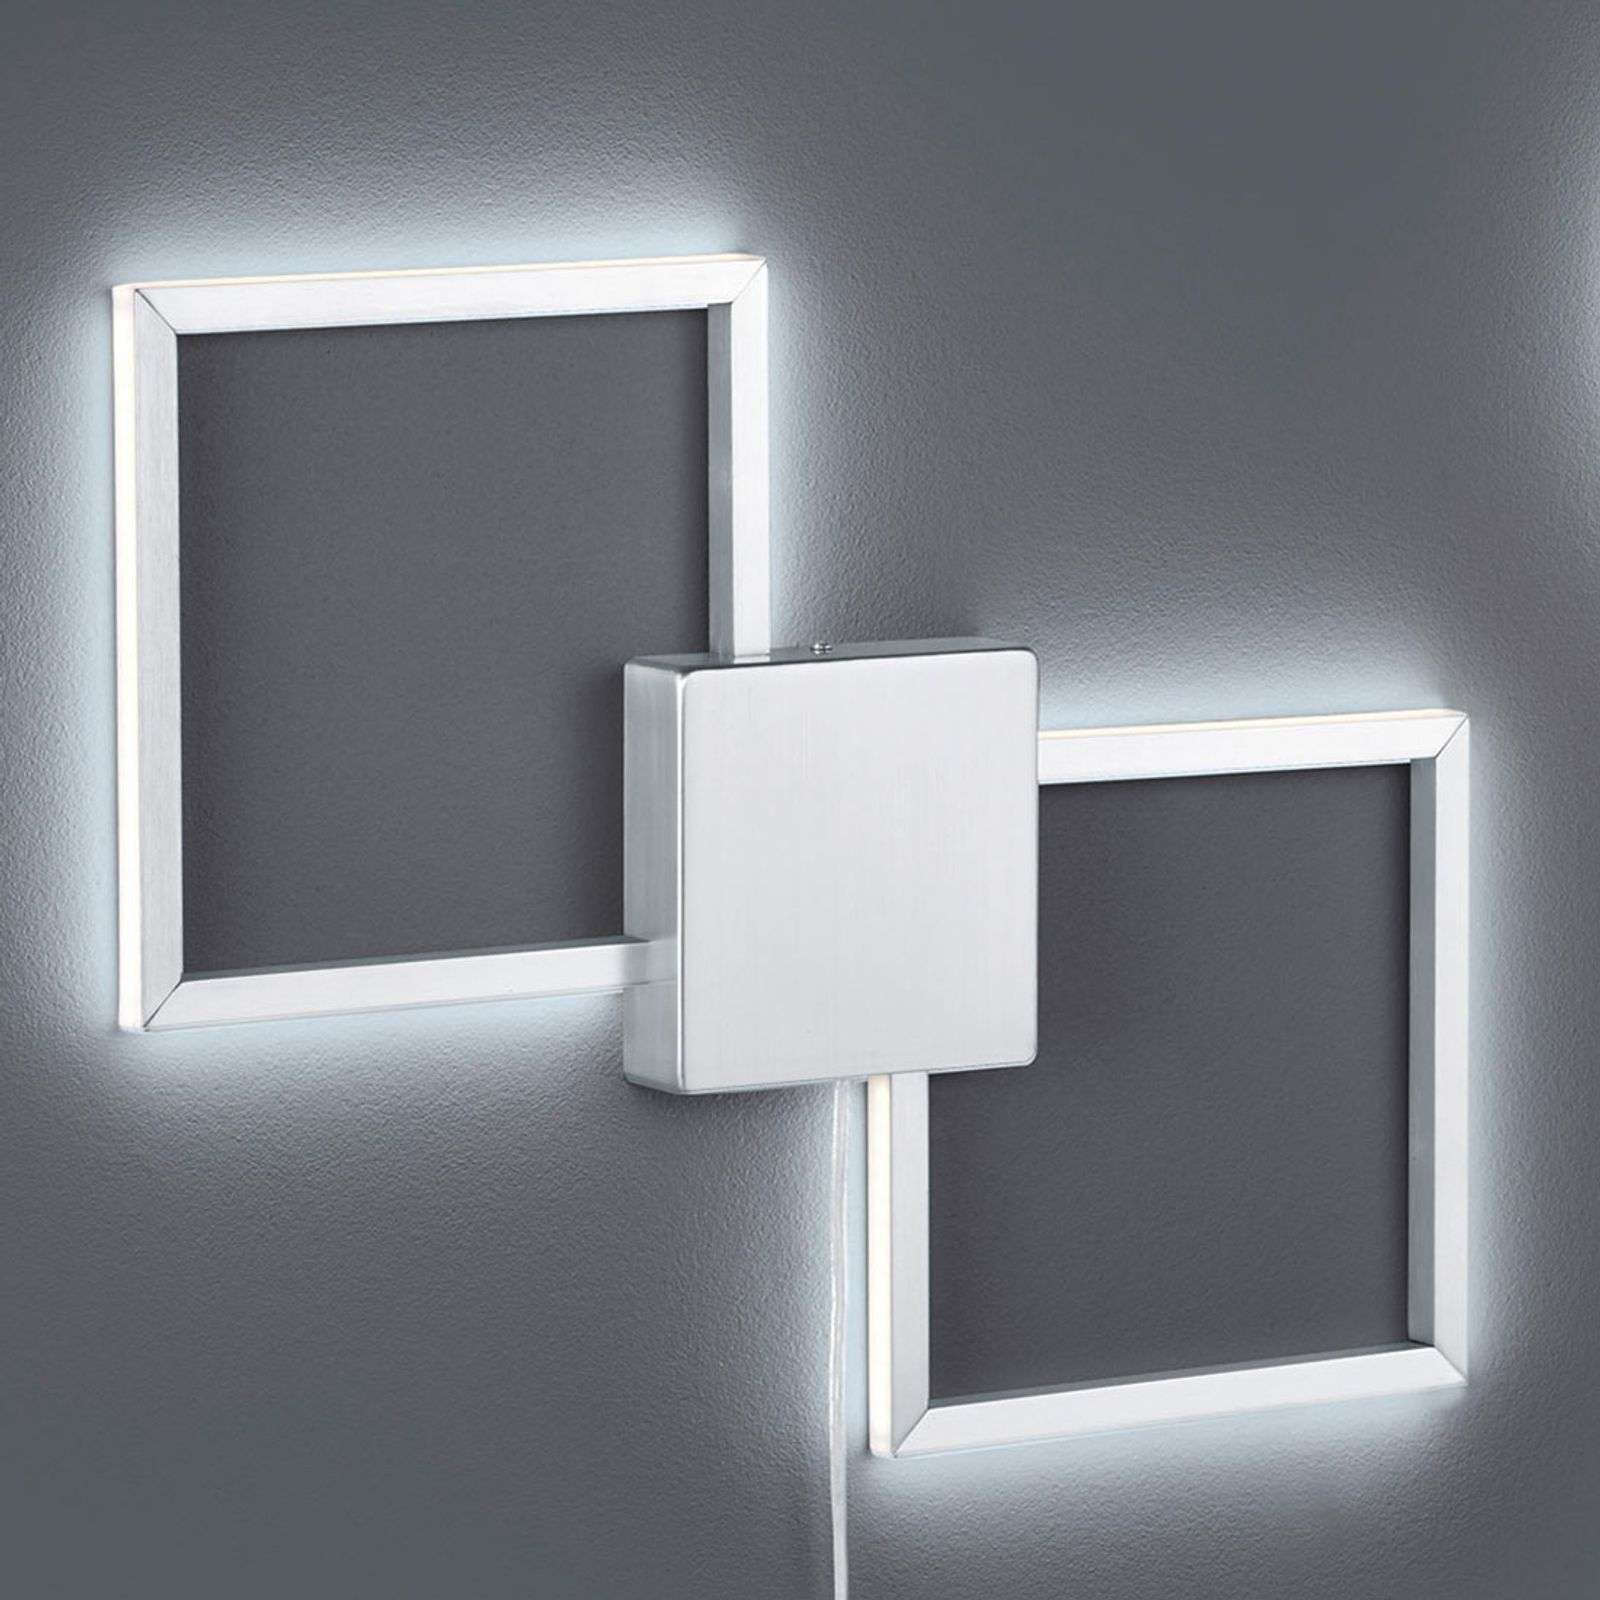 Applique LED dimmable Hydra de forme carrée